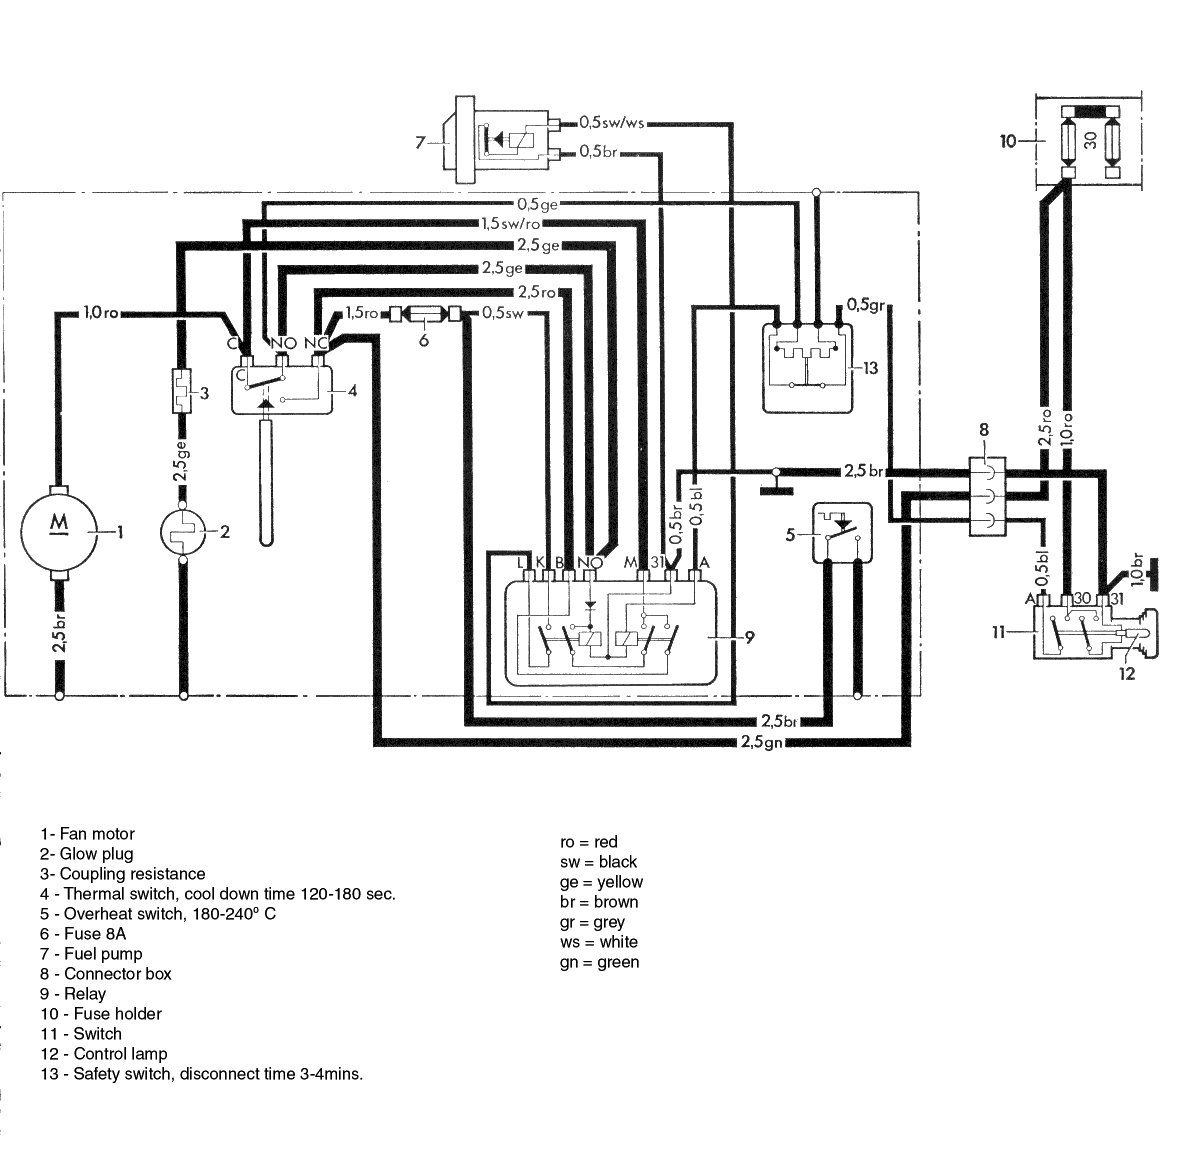 gas heater wiring diagram thesamba com vw eberspacher gas heater installation manual bn  vw eberspacher gas heater installation